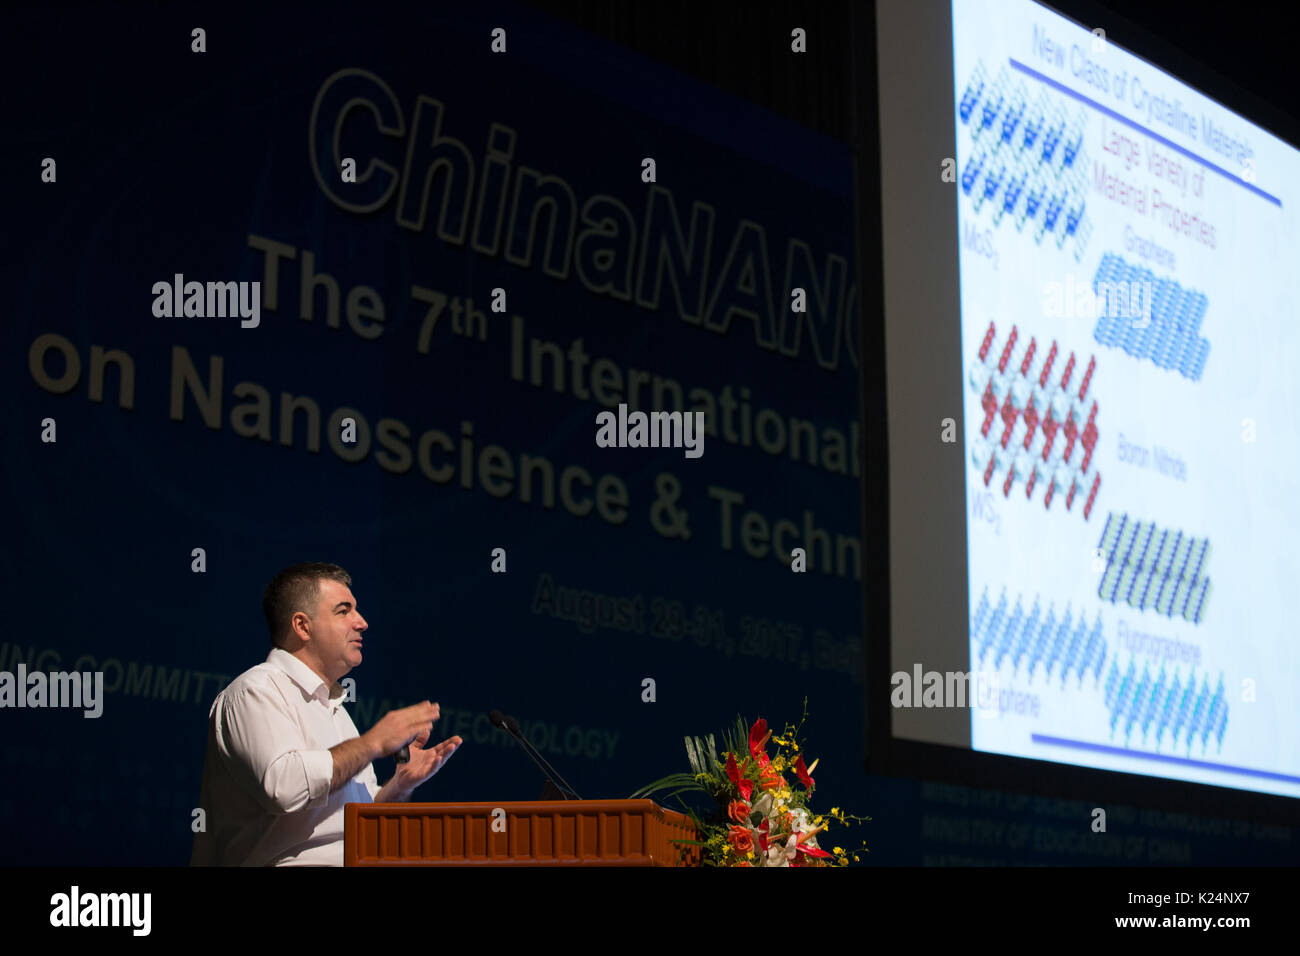 Beijing, China. 29th Aug, 2017. Professor Konstantin Novoselov, whose work on graphene earned him the Nobel Prize in Physics in 2010, addresses the 7th International Conference on Nanoscience and Technology (ChinaNANO 2017) in Beijing, capital of China, Aug. 29, 2017. More than 2,000 delegates from over 30 countries and regions gathered in Beijing for the conference from Aug. 29 to 31. Credit: Jin Liwang/Xinhua/Alamy Live News - Stock Image